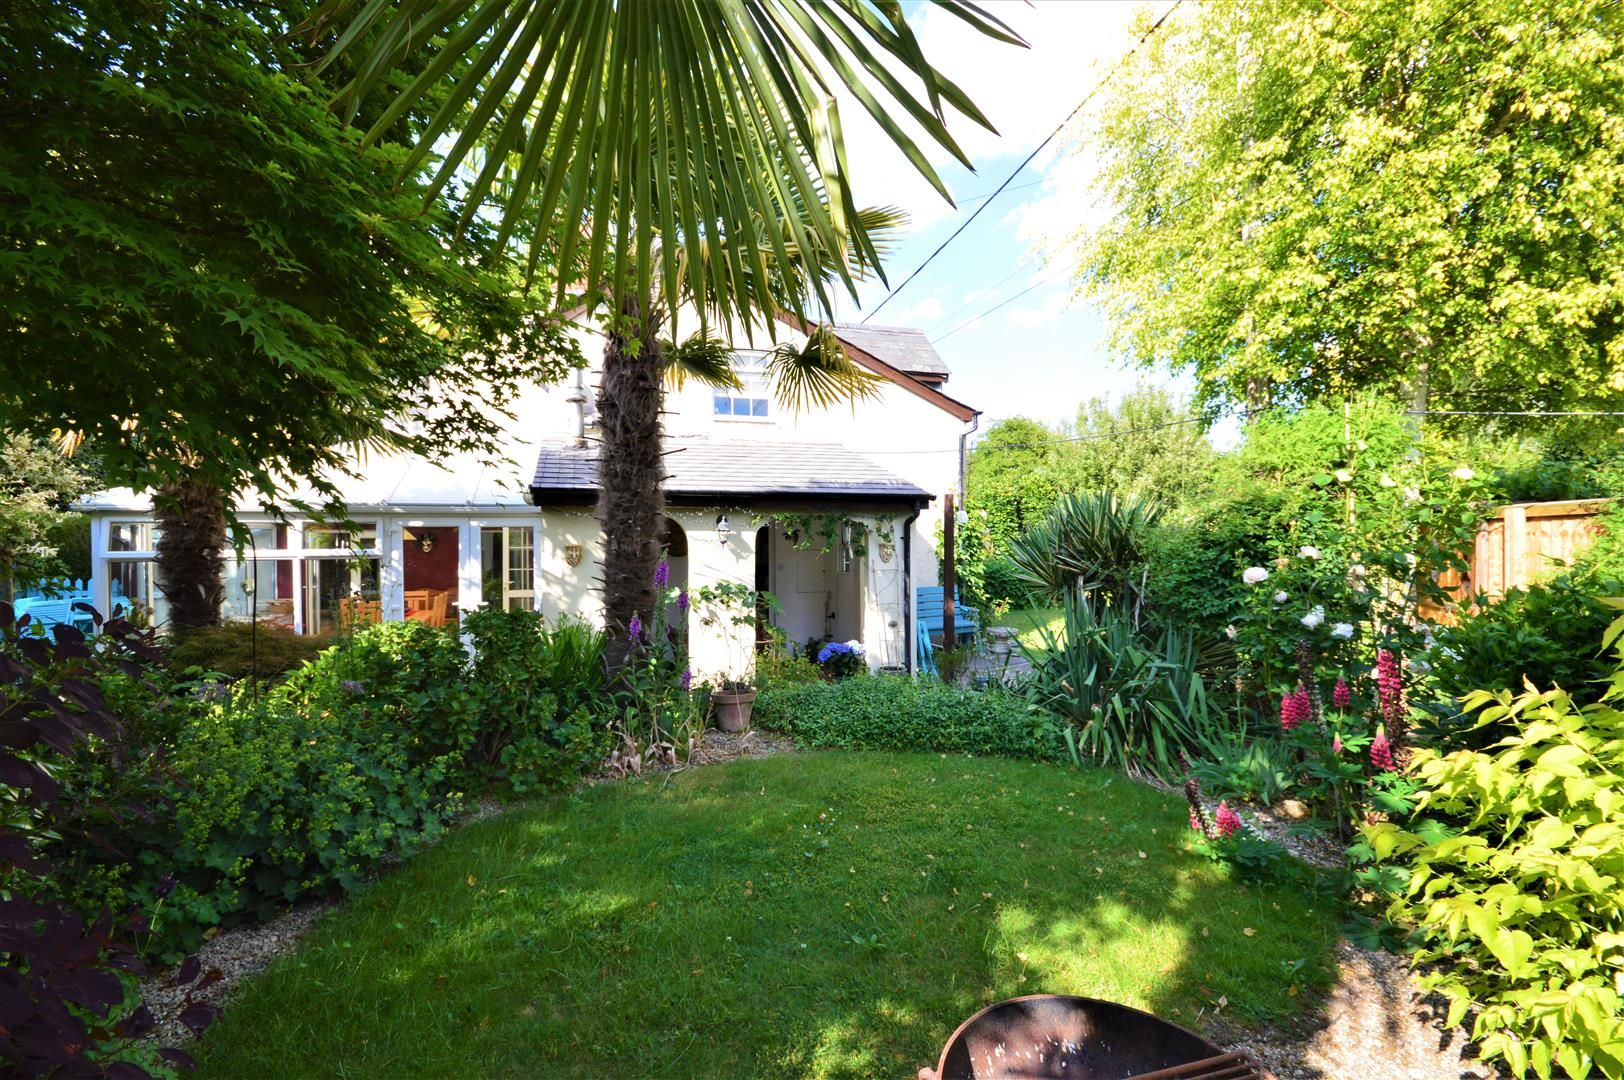 3 bed semi-detached for sale in Stretton Sugwas 2